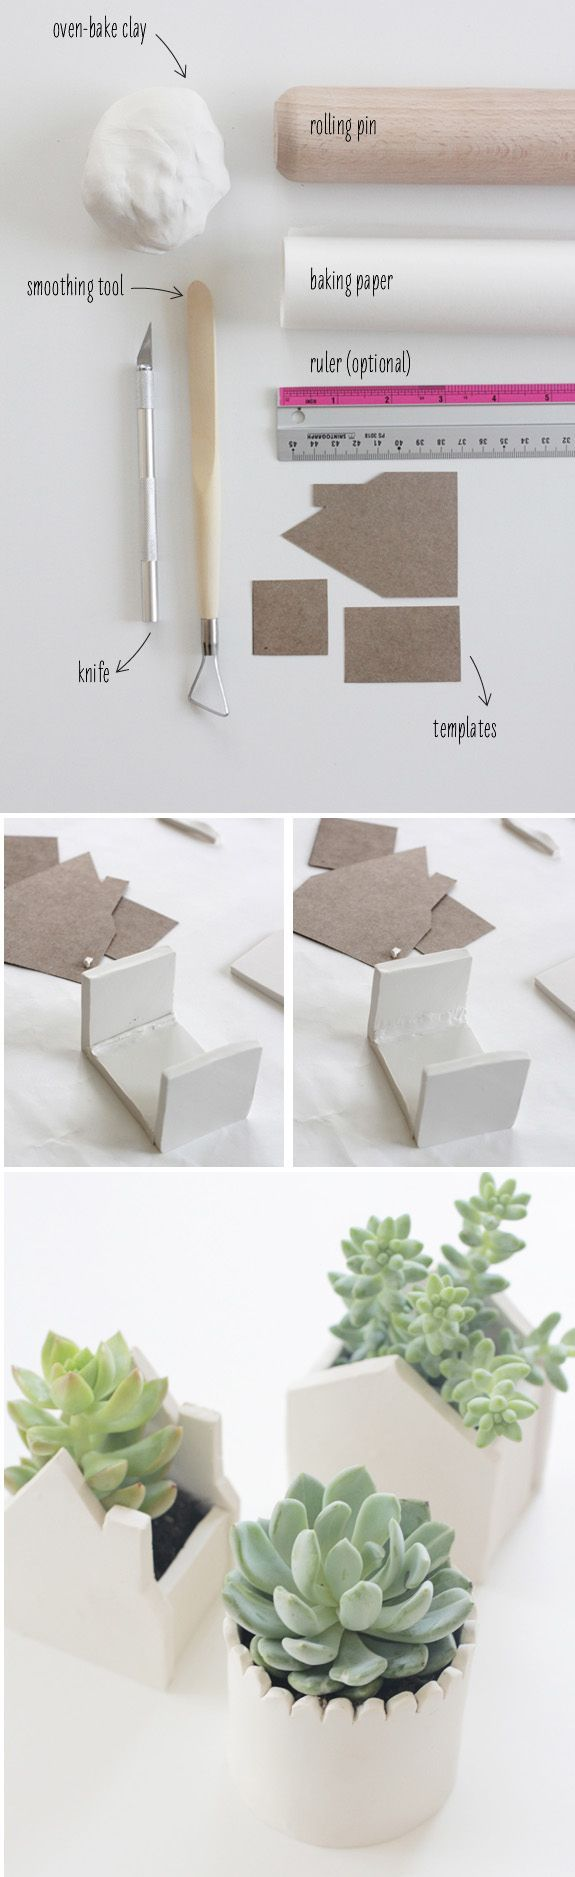 Little Clay House Potters for Succulents | 50 Tiny And Adorable DIY Stocking Stuffers (scheduled via http://www.tailwindapp.com?utm_source=pinterest&utm_medium=twpin&utm_content=post776177&utm_campaign=scheduler_attribution)